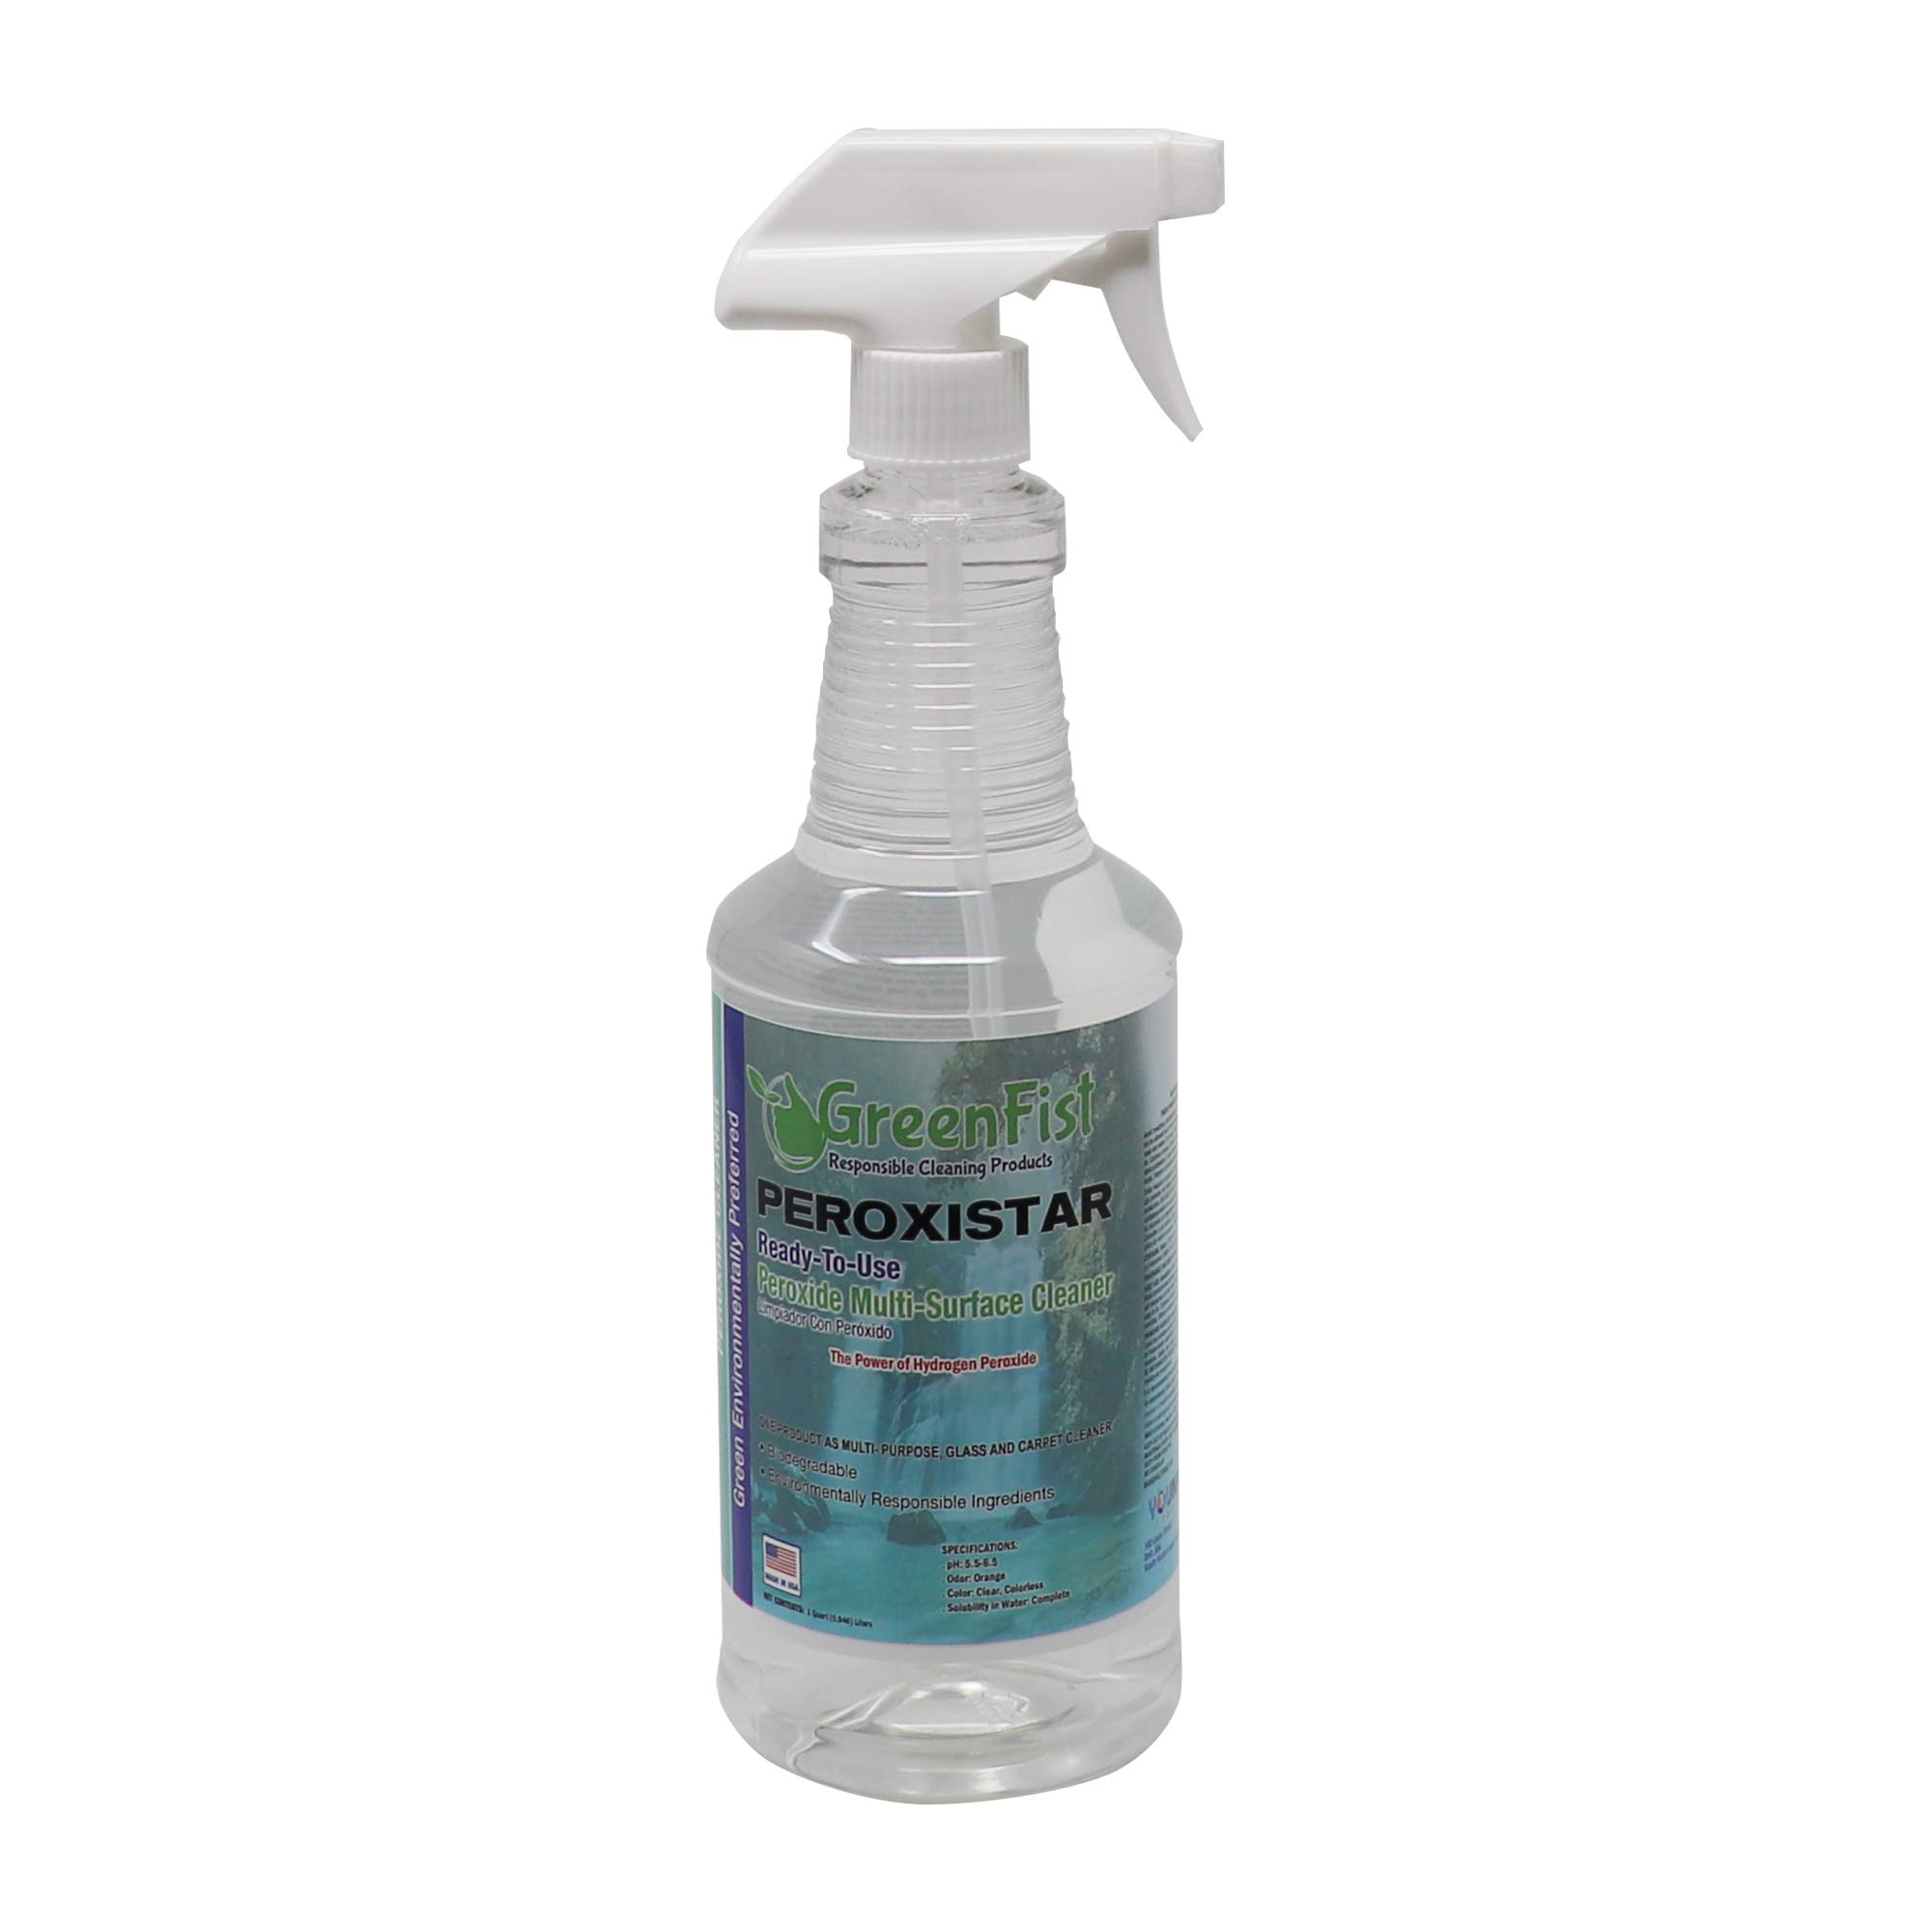 GreenFist PeroxiStar Hydrogen Peroxide Multi Surface Cleaner Disinfectant [Ready to Use], (Spray Bottle 32 oz)